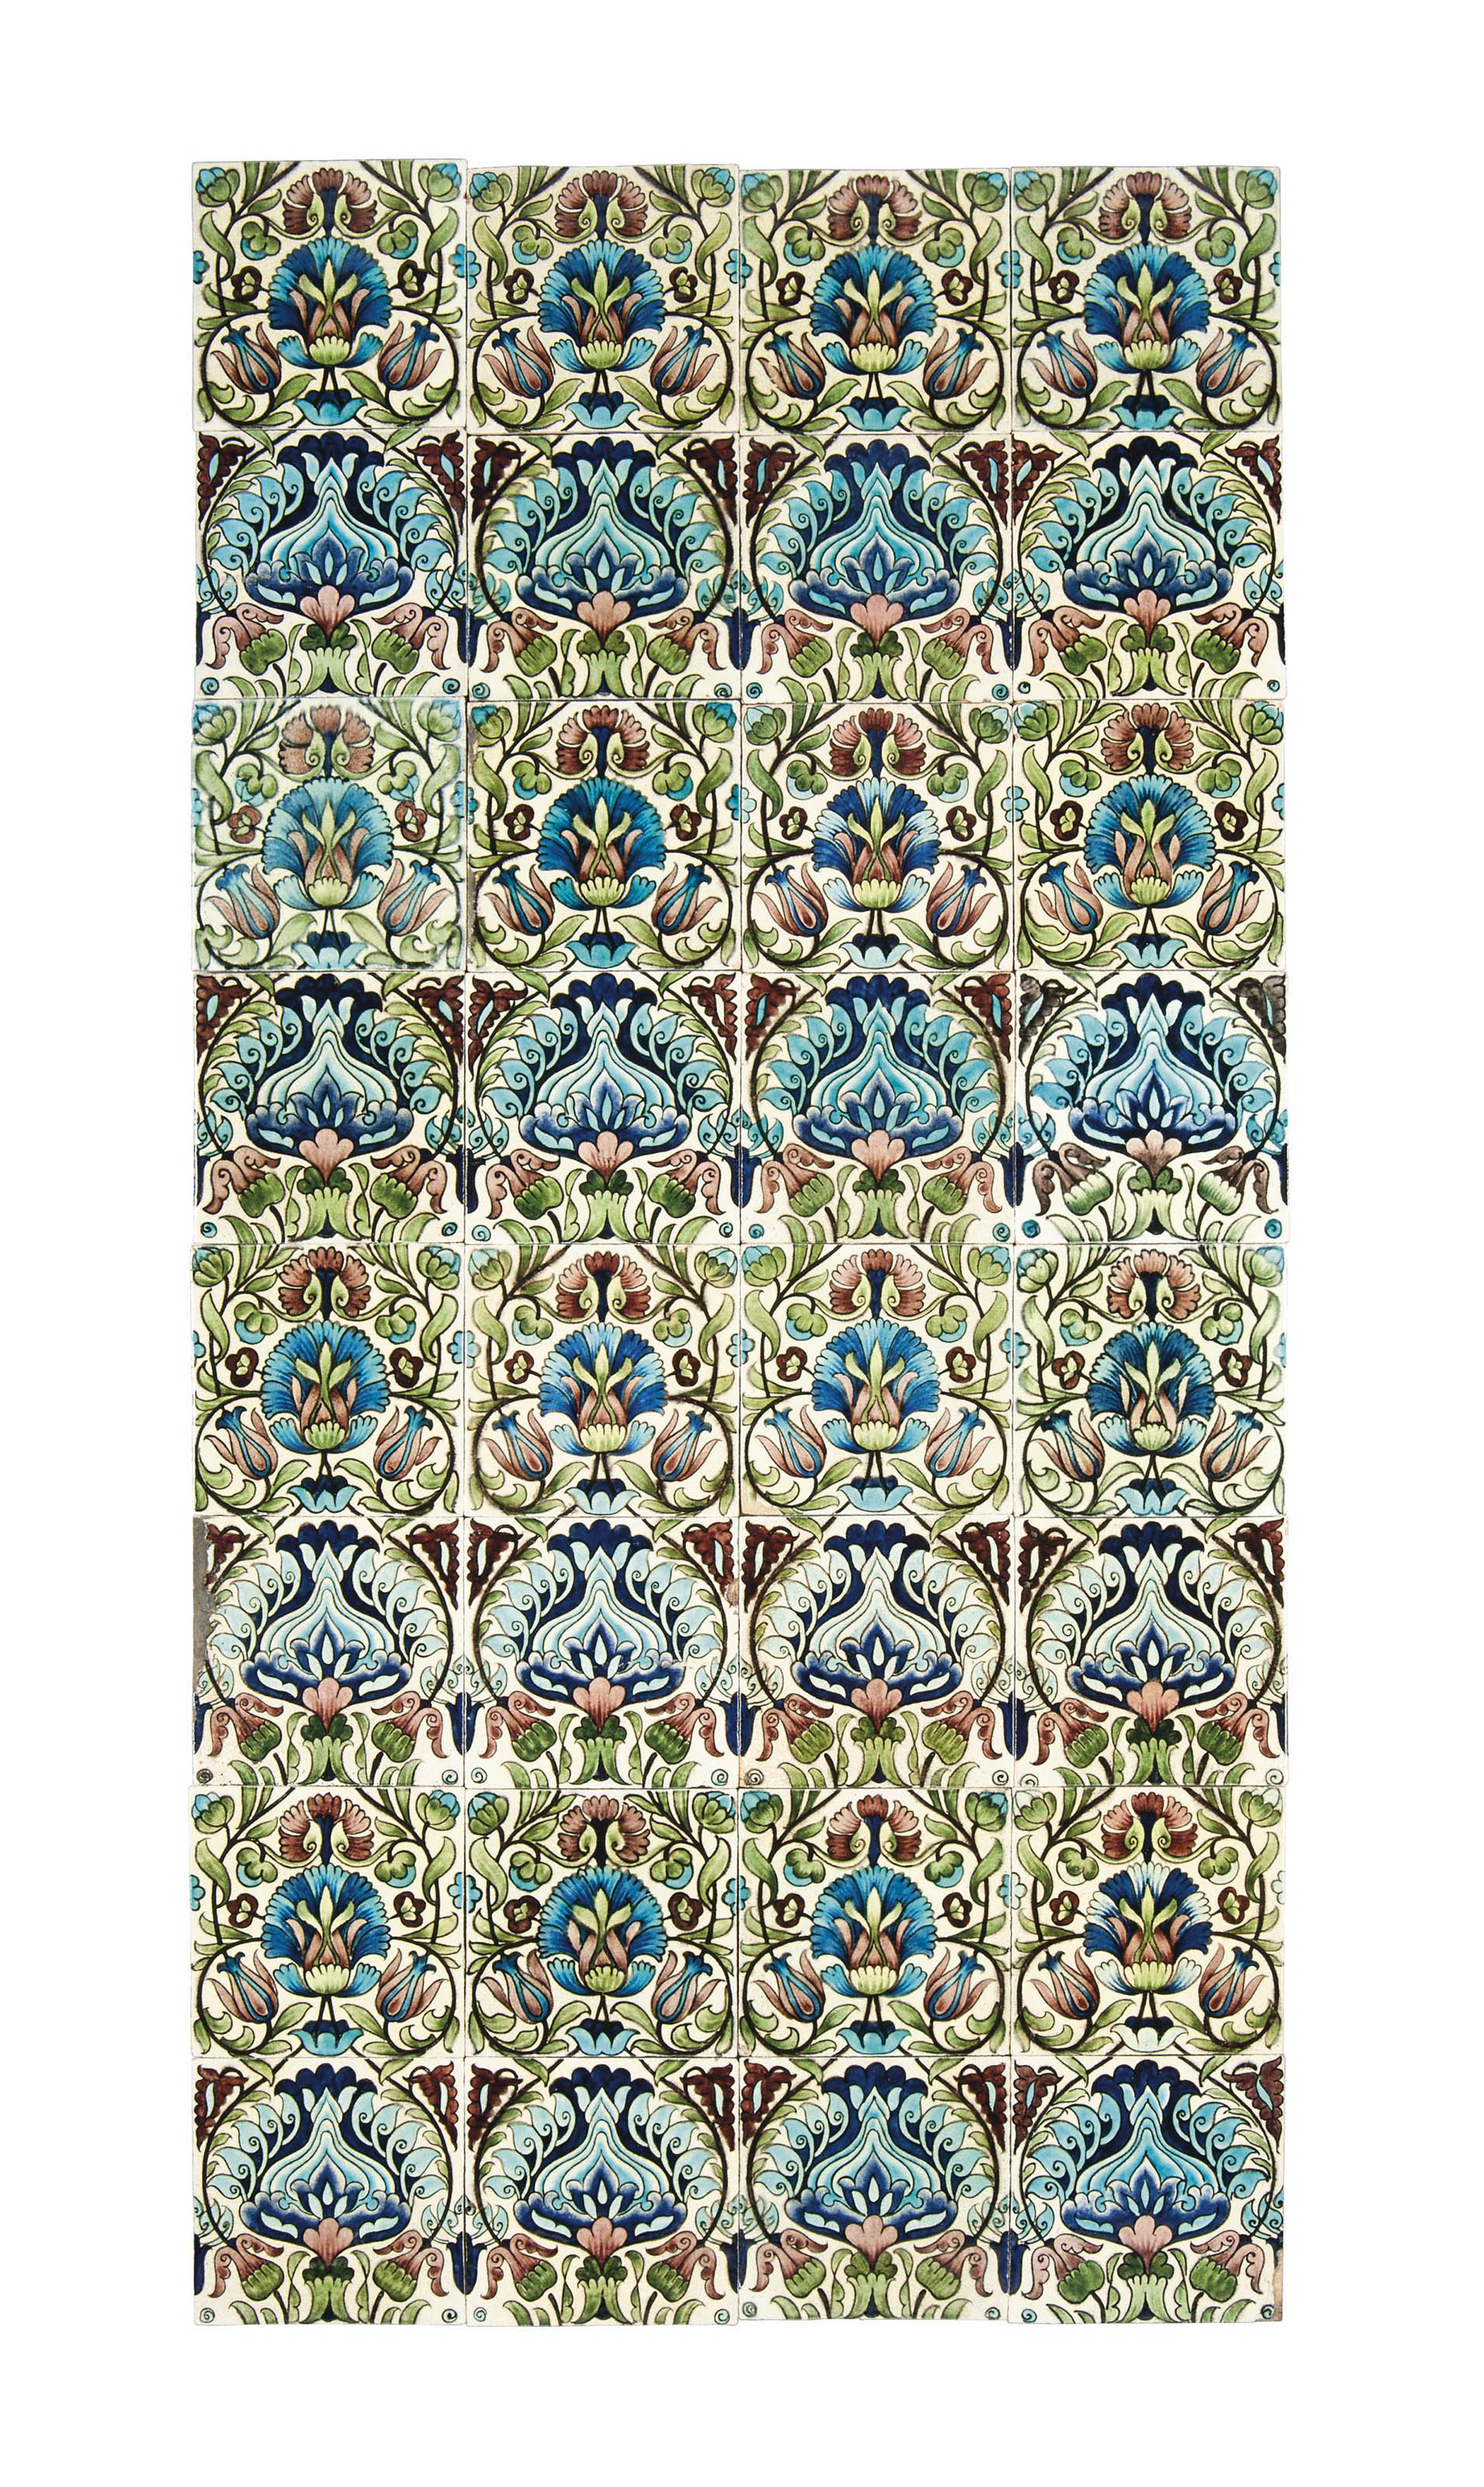 A WILLIAM DE MORGAN PERSIAN PATTERN PANEL OF THIRY-TWO SIX INCH CERAMIC TILES